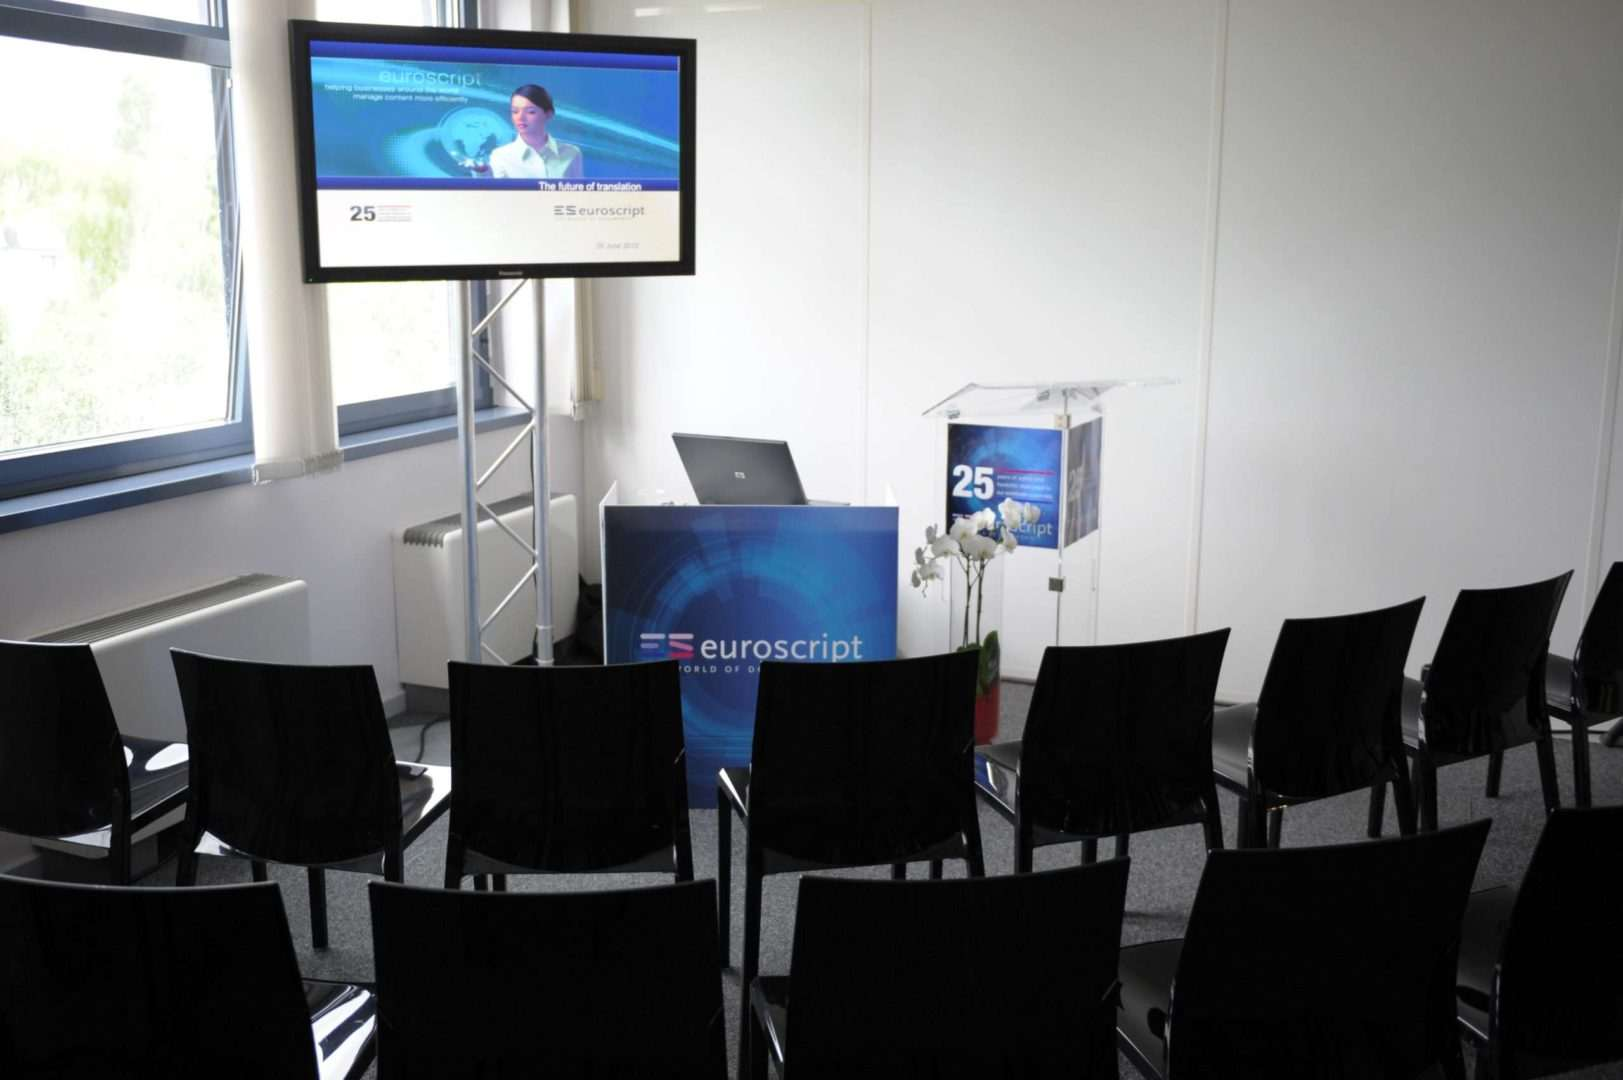 25-ans-euroscript-2009-business-day-partage-performance-projet-luxembourg